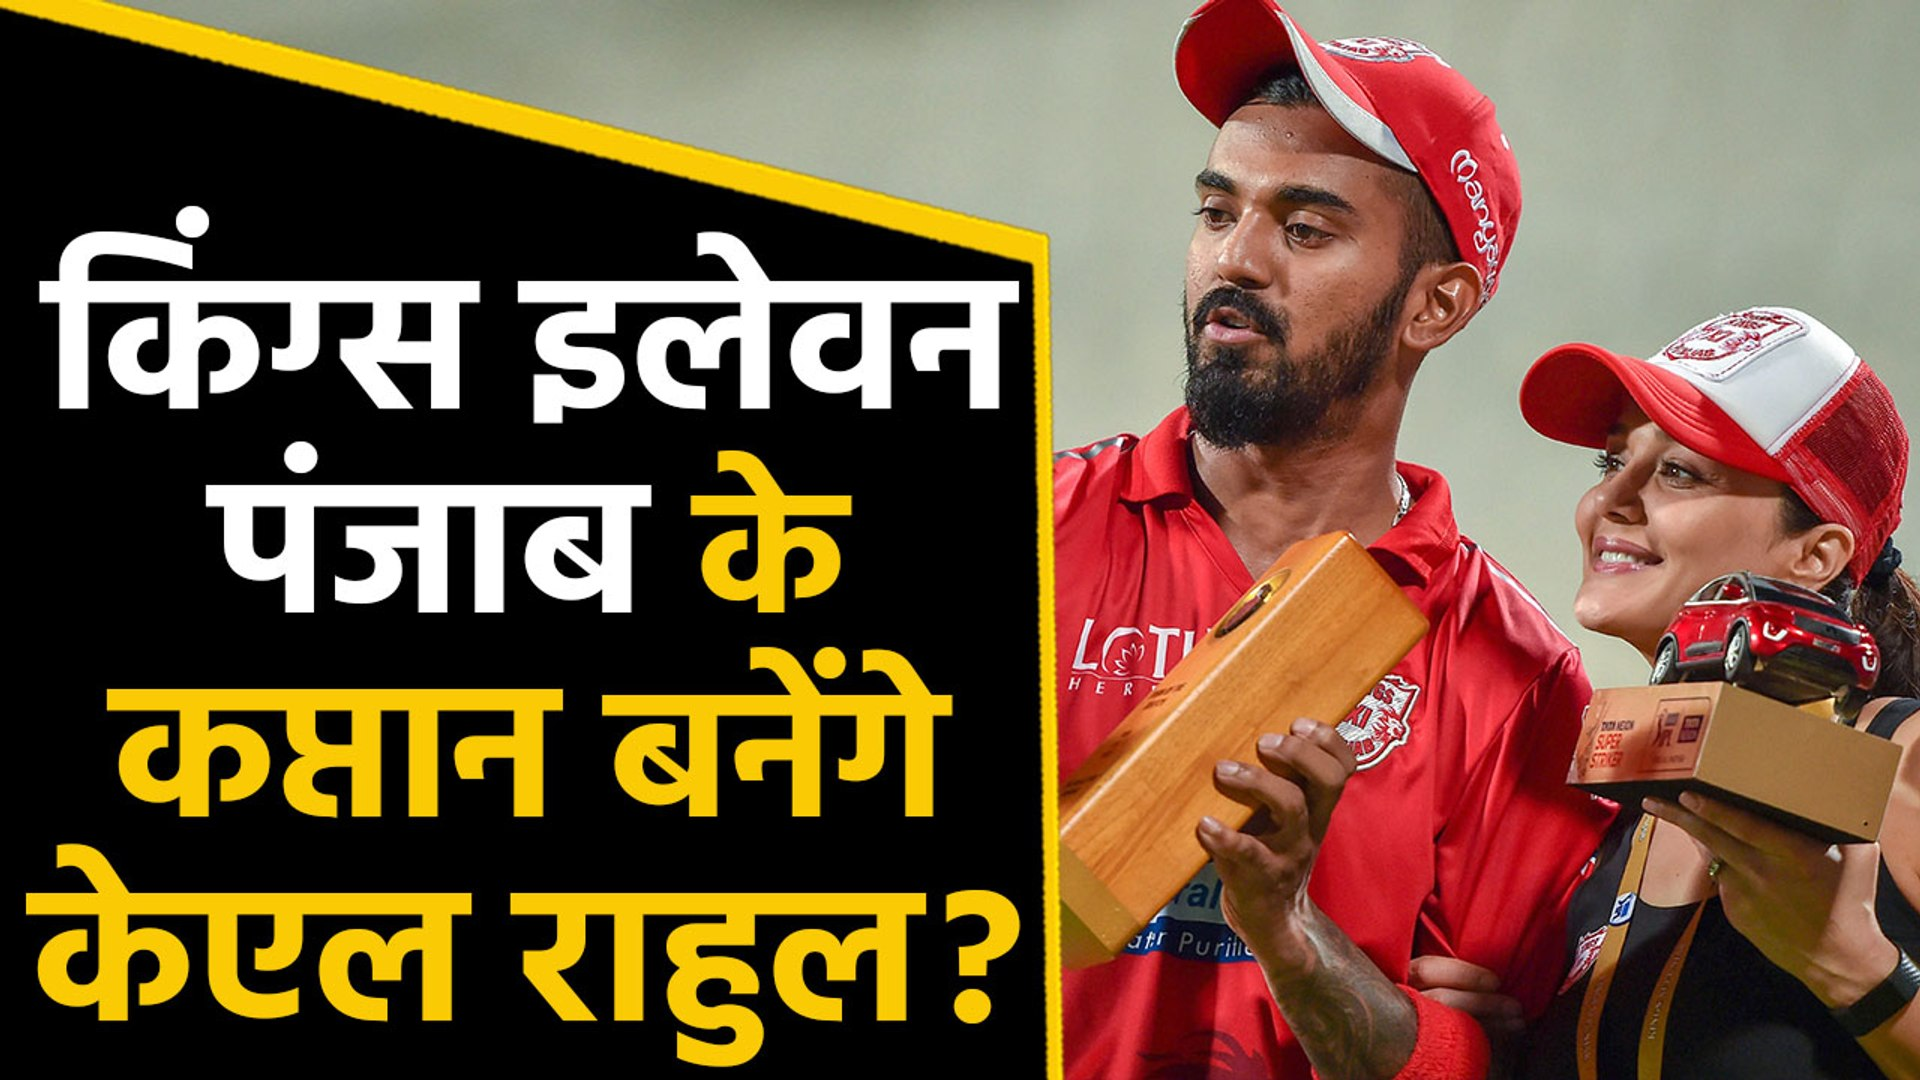 IPL 2020 Auction : KL Rahul set to become Kings XI Punjab Captain, says reports | वनइंडिया हिंदी